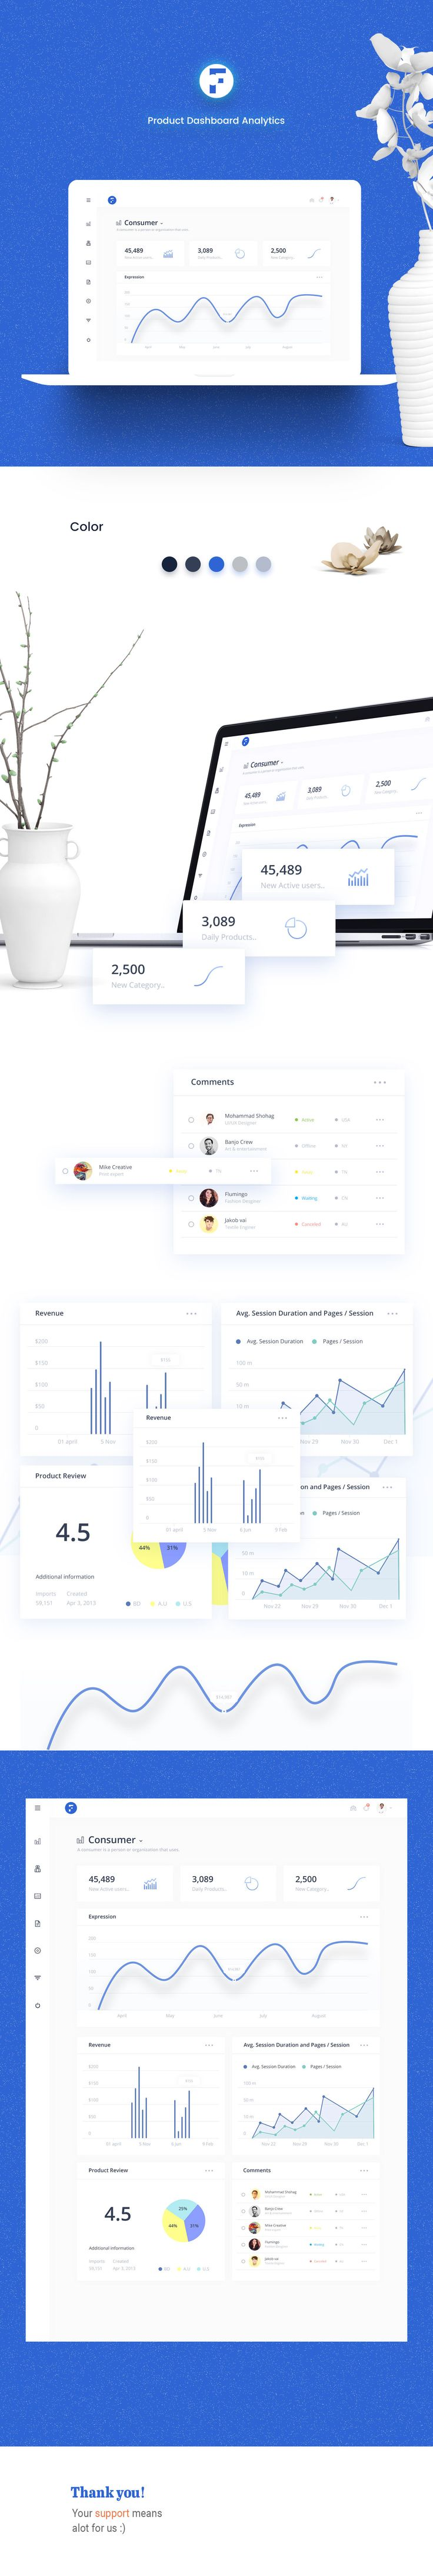 Product Dashboard Design has built to see the product Details like product sales,visitors,comments etc.Now admin can easily interact with all of these staff , hope you like it.